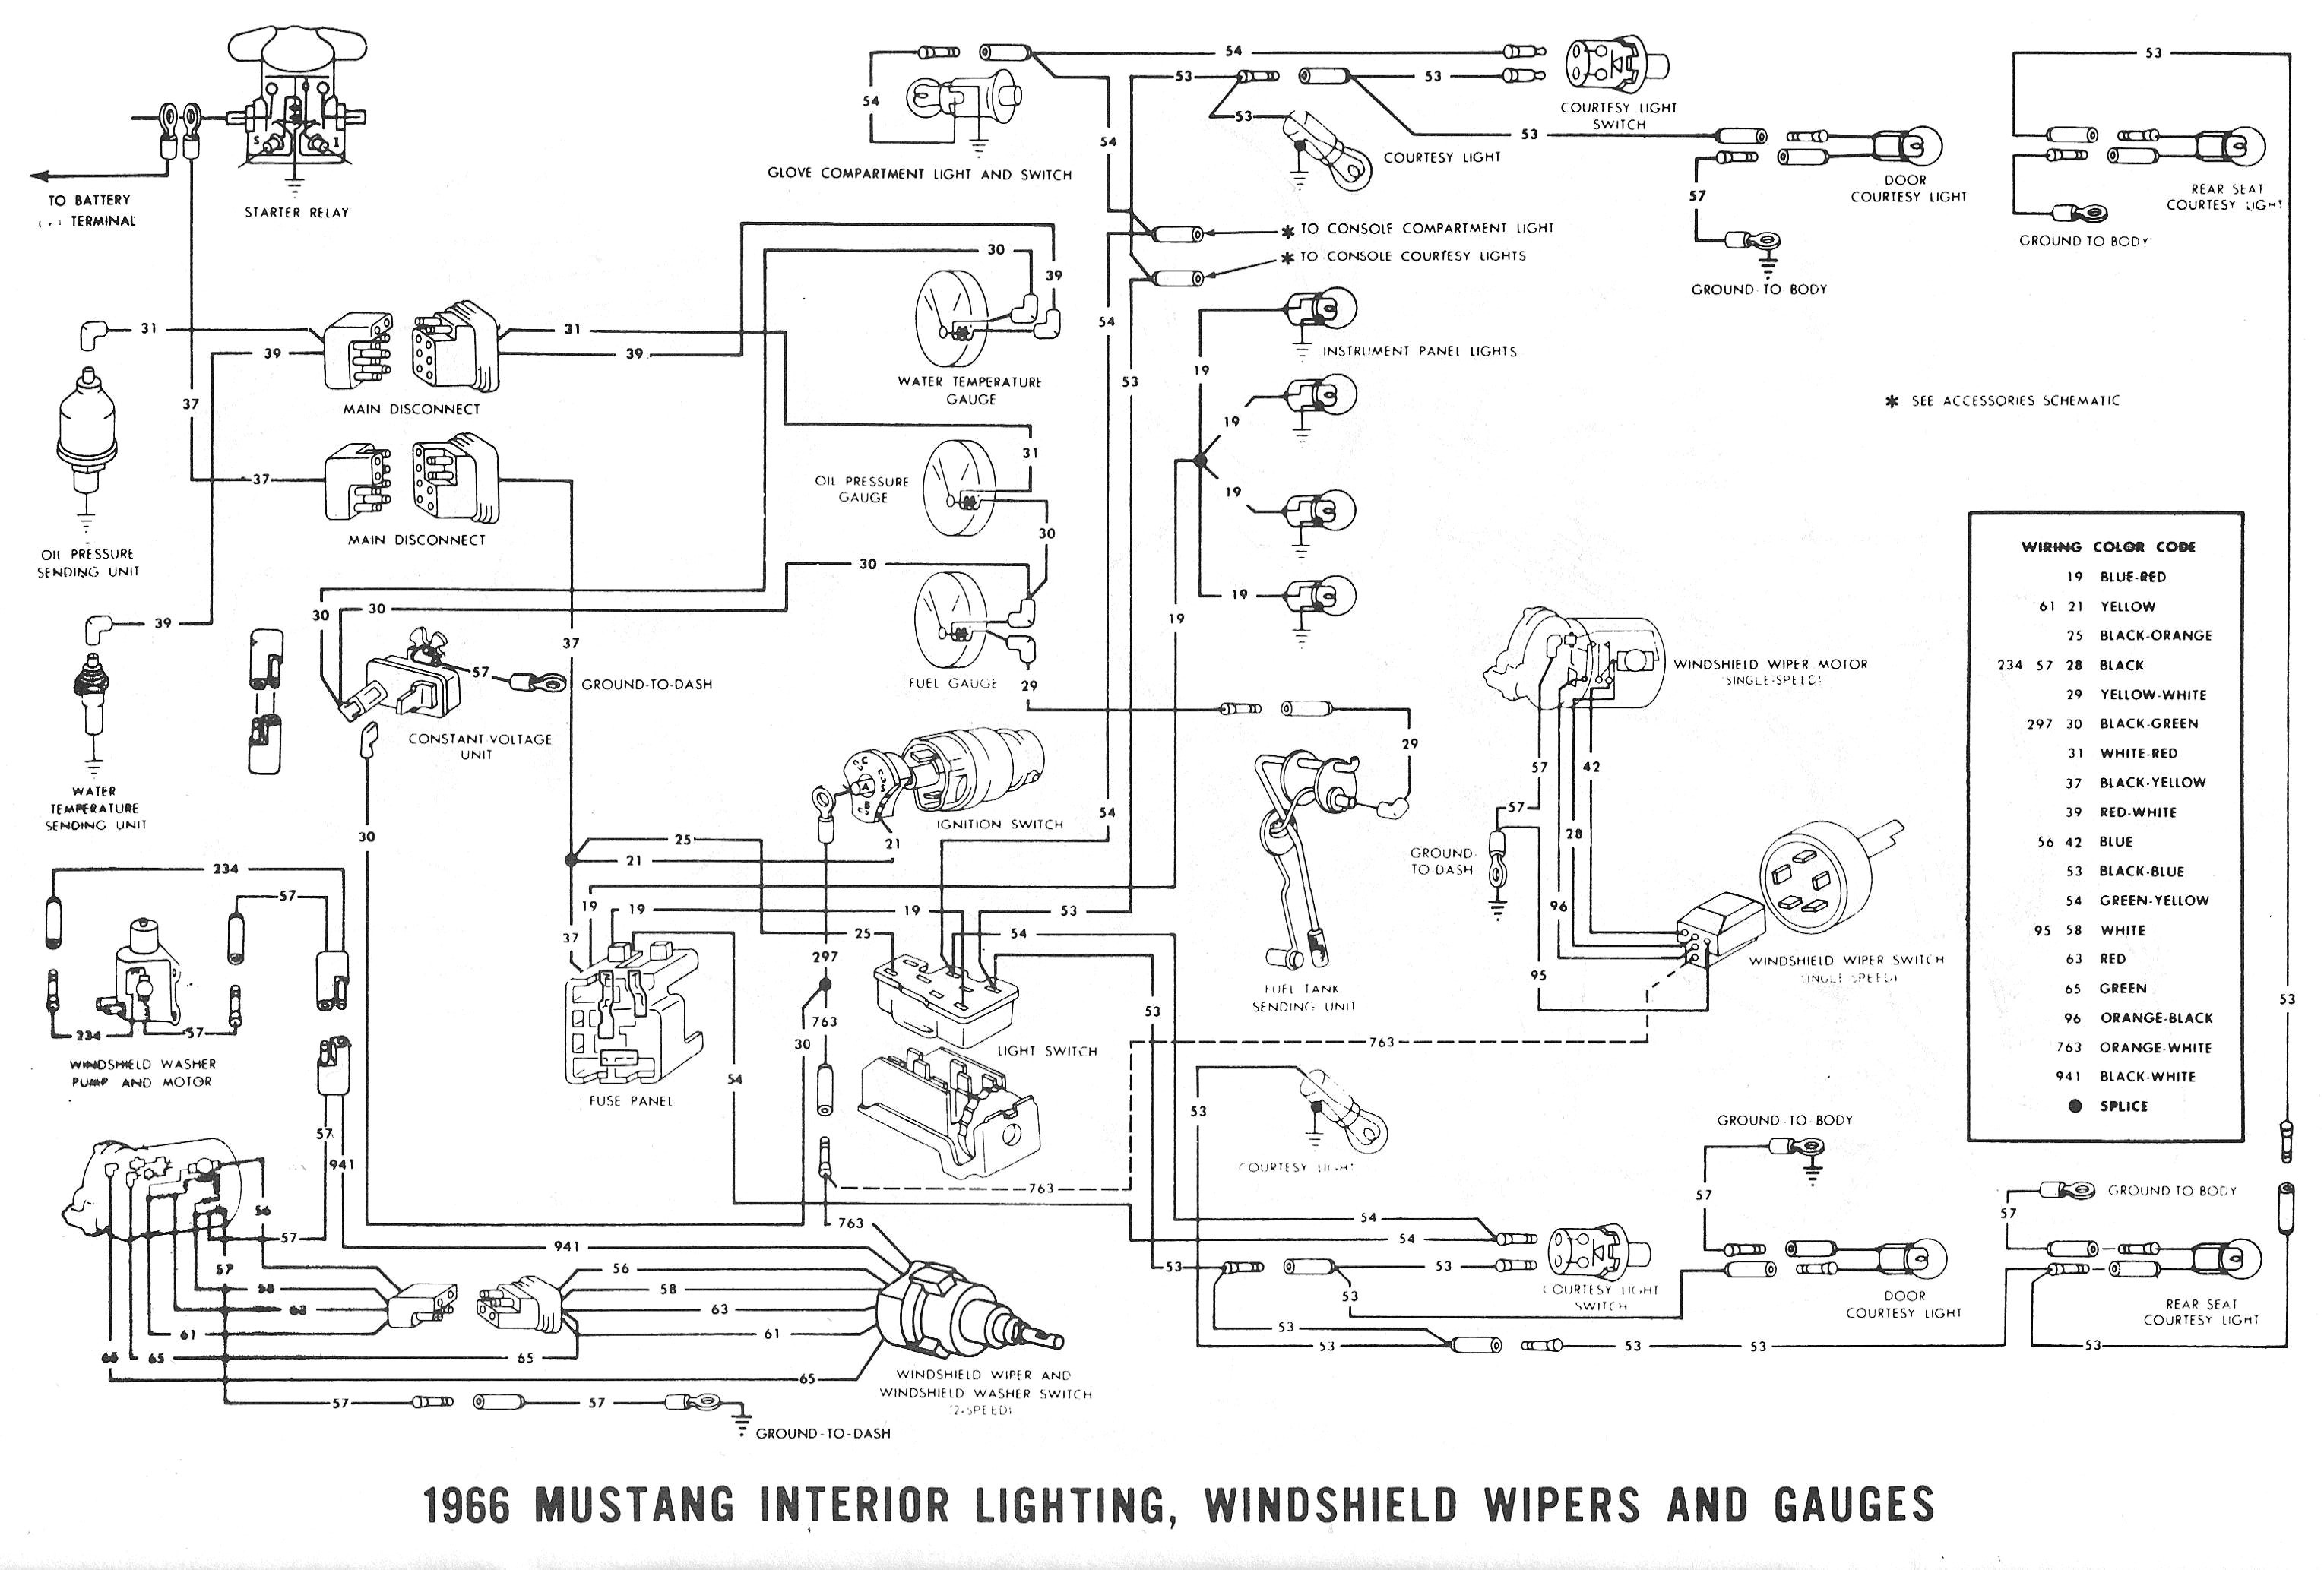 Land Rover Wiring Diagrams 1966 Ford Mustang Diagram Smart Land Rover Wiring Diagrams Circuit Rh Wiringdiagraminc Today 1967 Vacuum